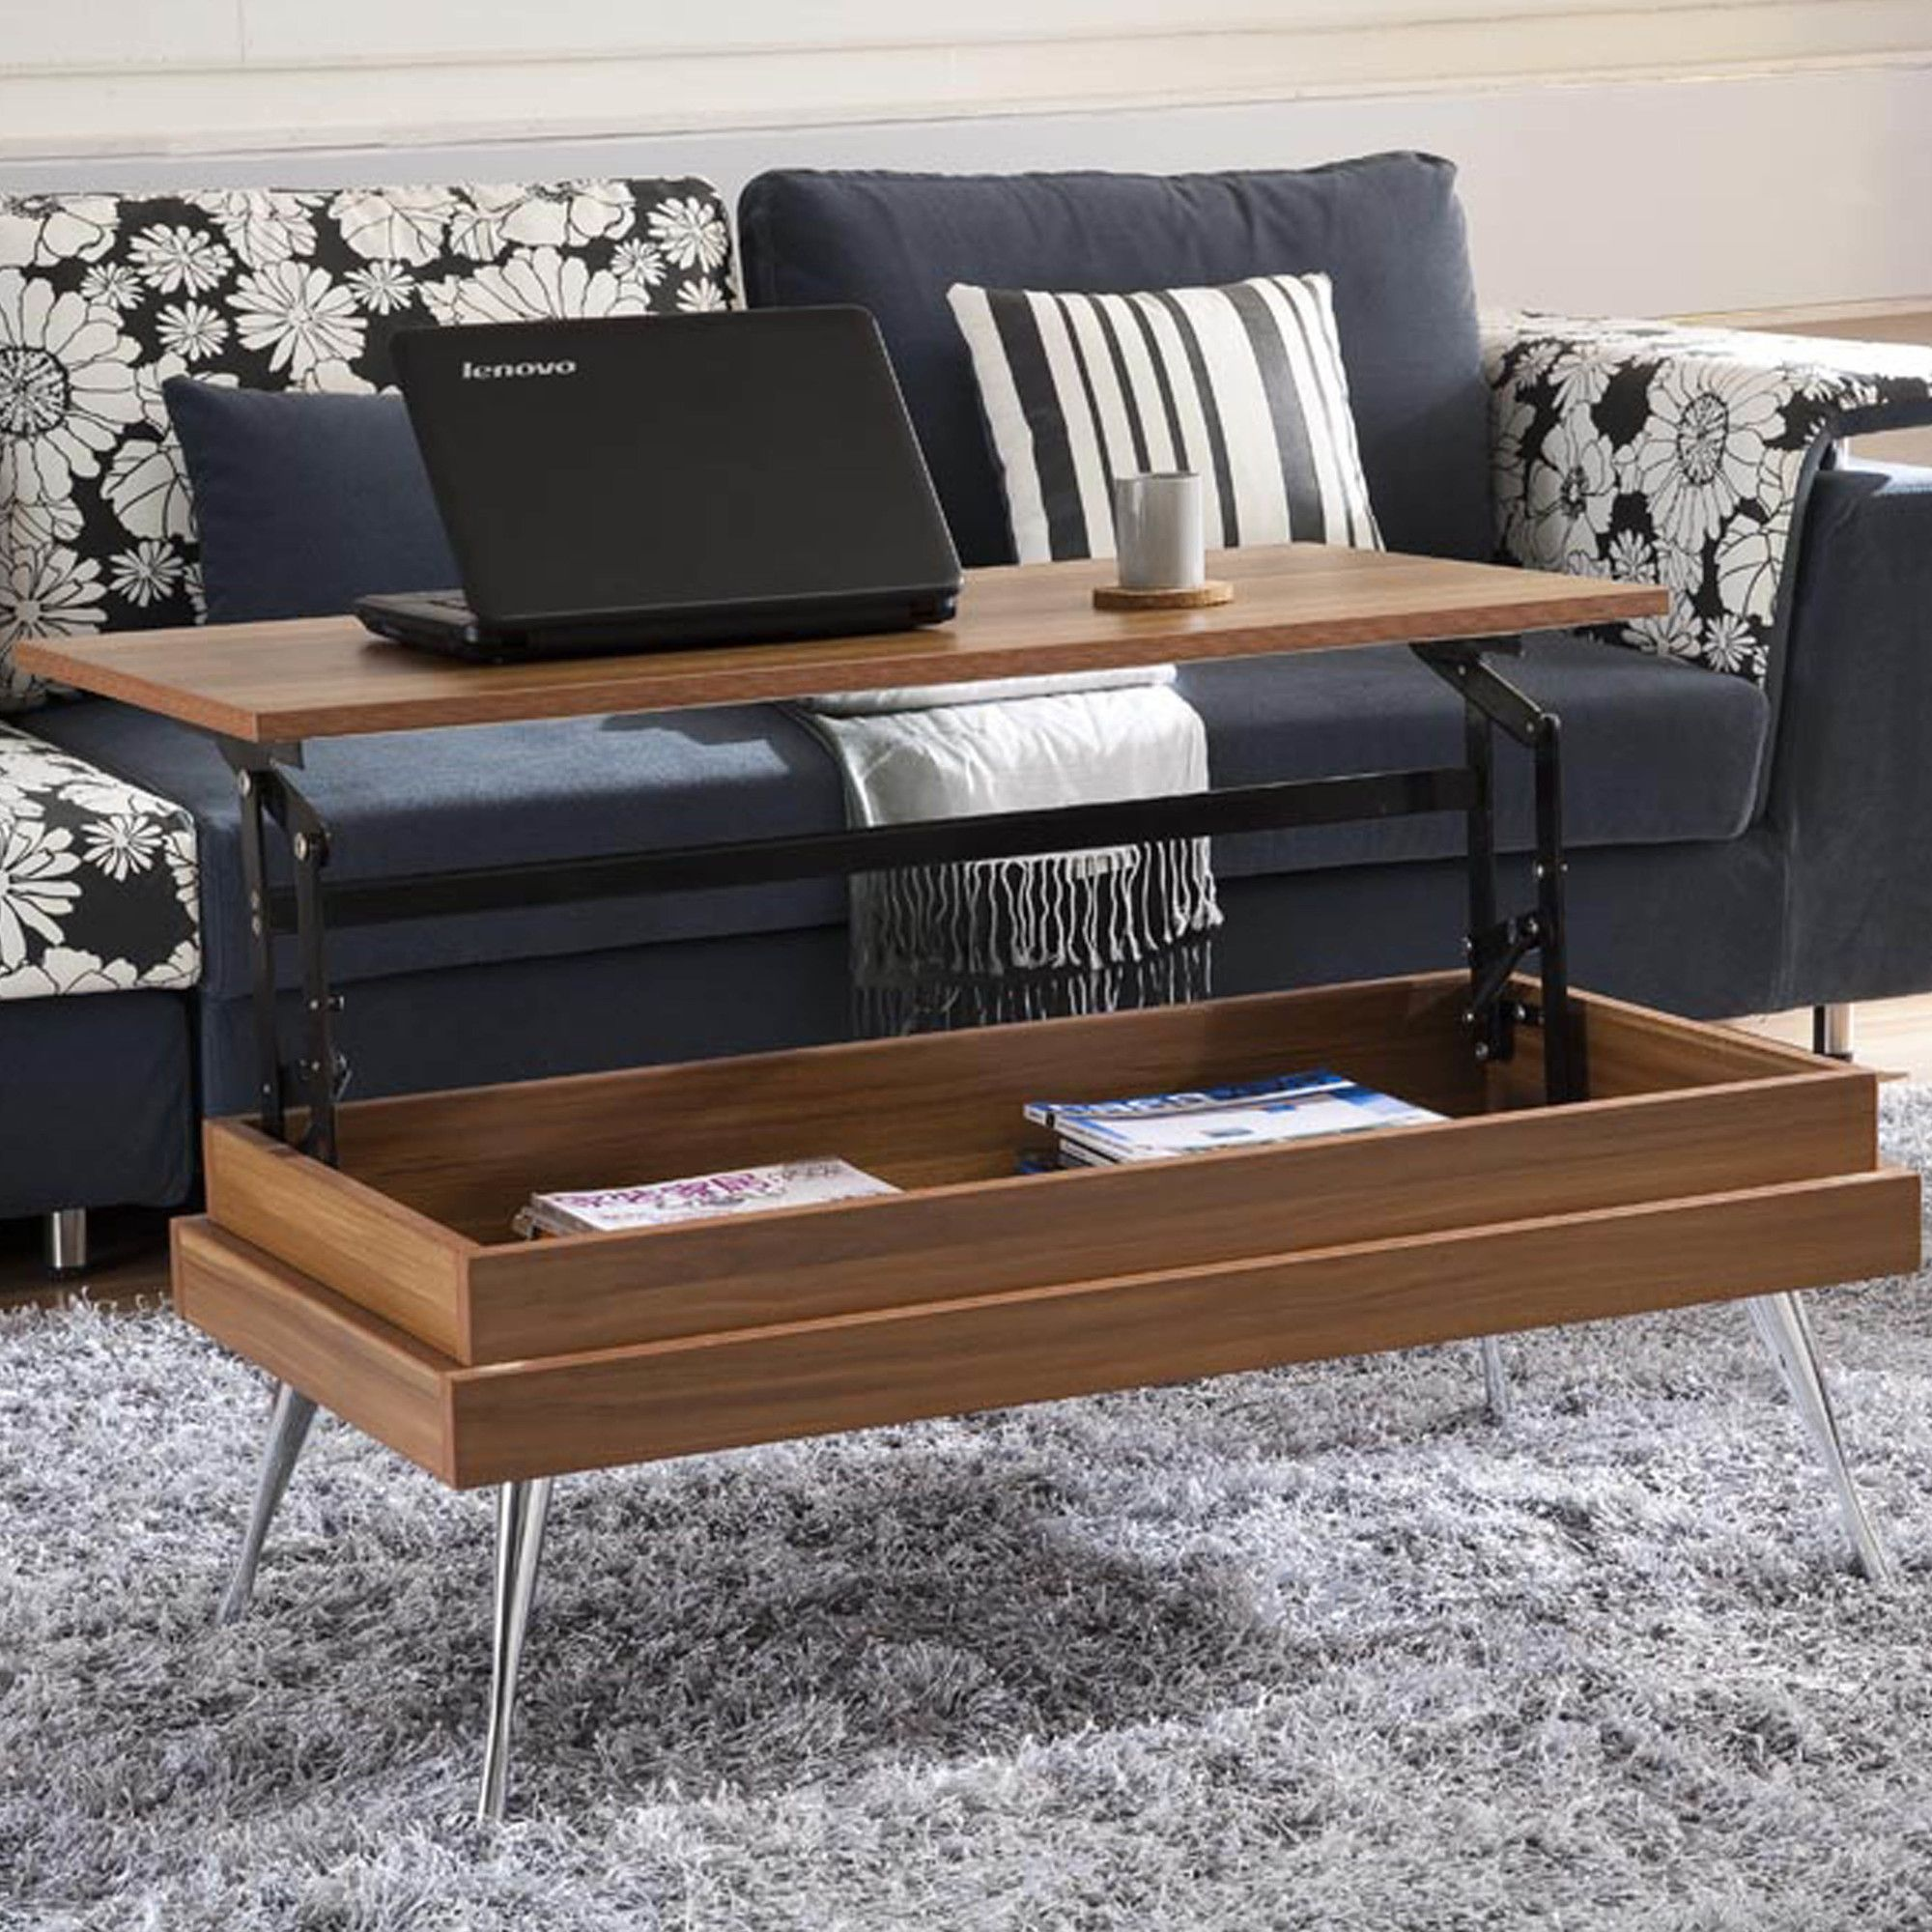 Similar To The West Elm Coffee Table Though Smaller Its Less - West elm lift up coffee table